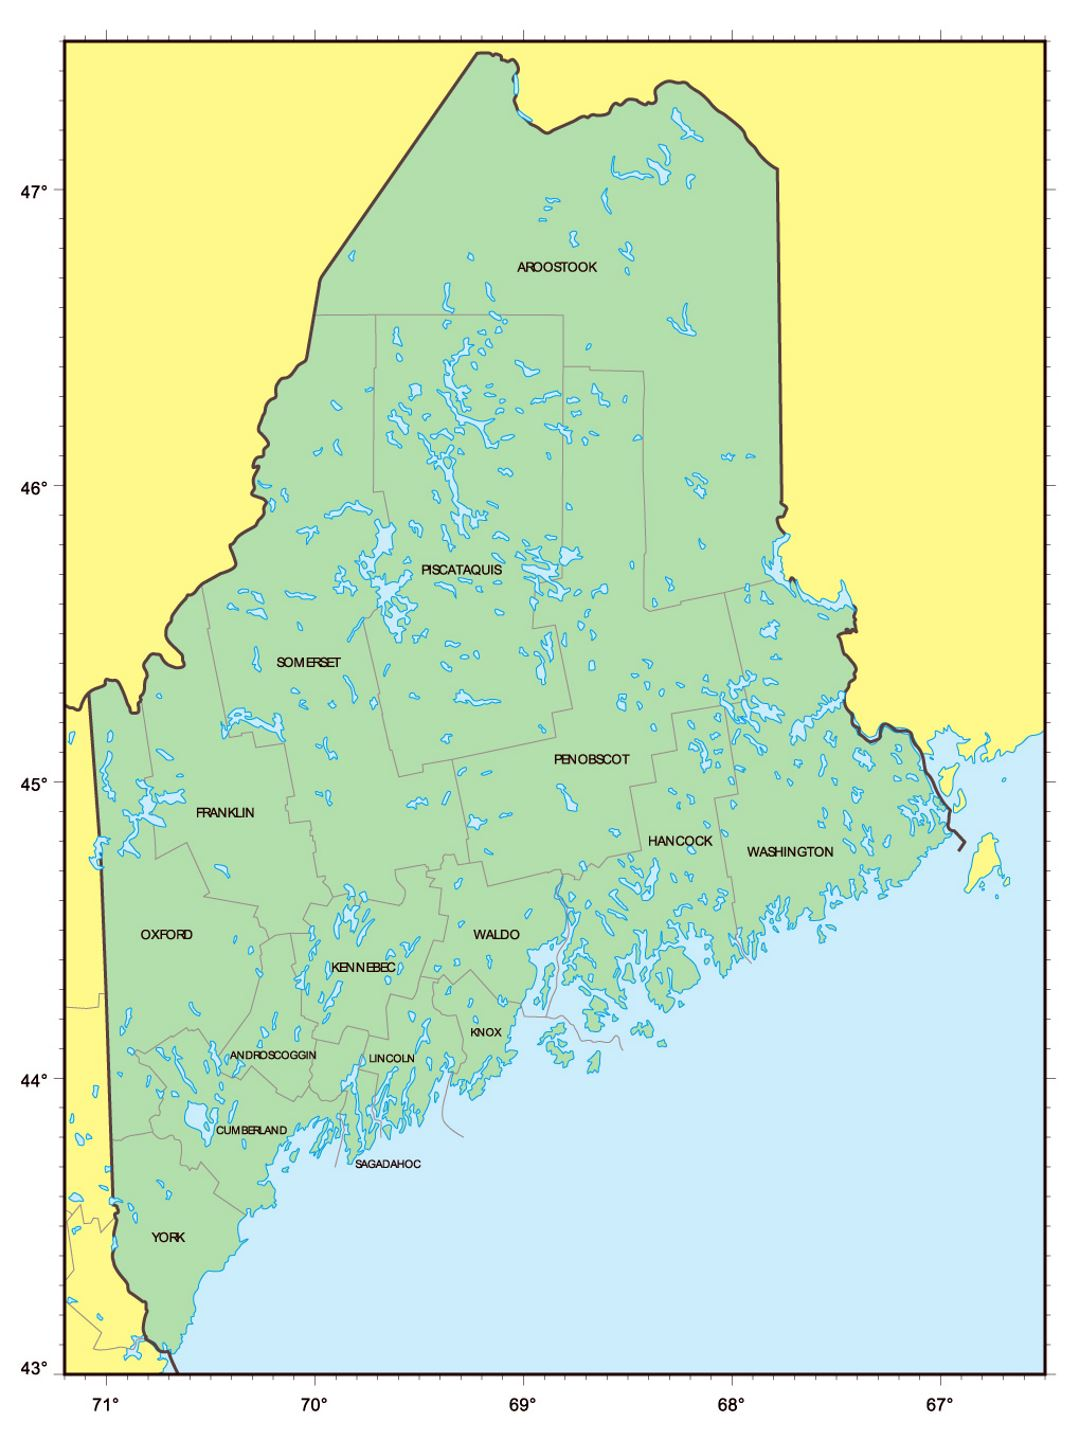 Detailed administrative map of Maine state